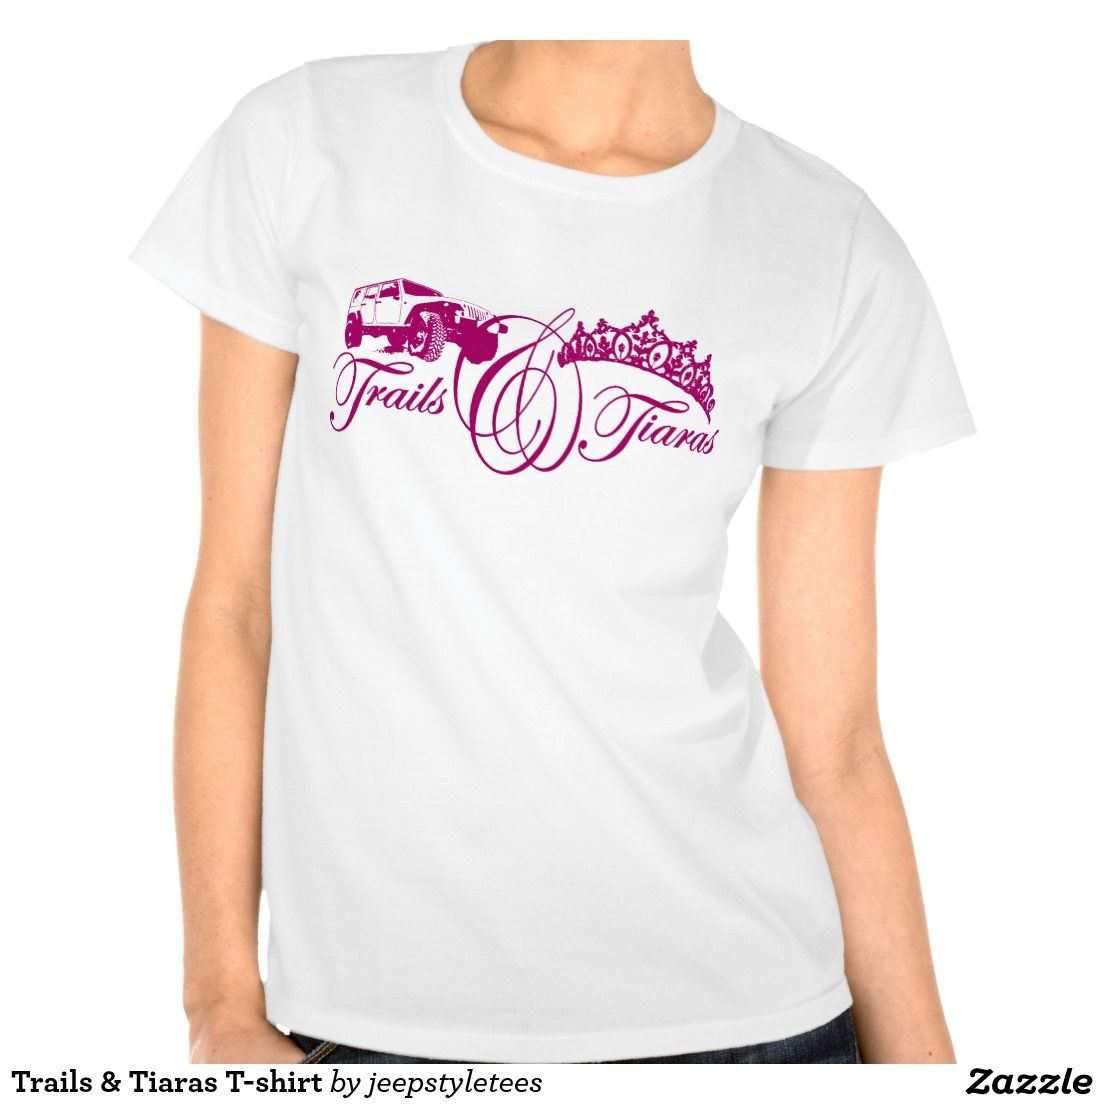 Design t shirt zazzle - Trails Tiaras T Shirt Zazzle Com Jeepstyletees Design Can Be